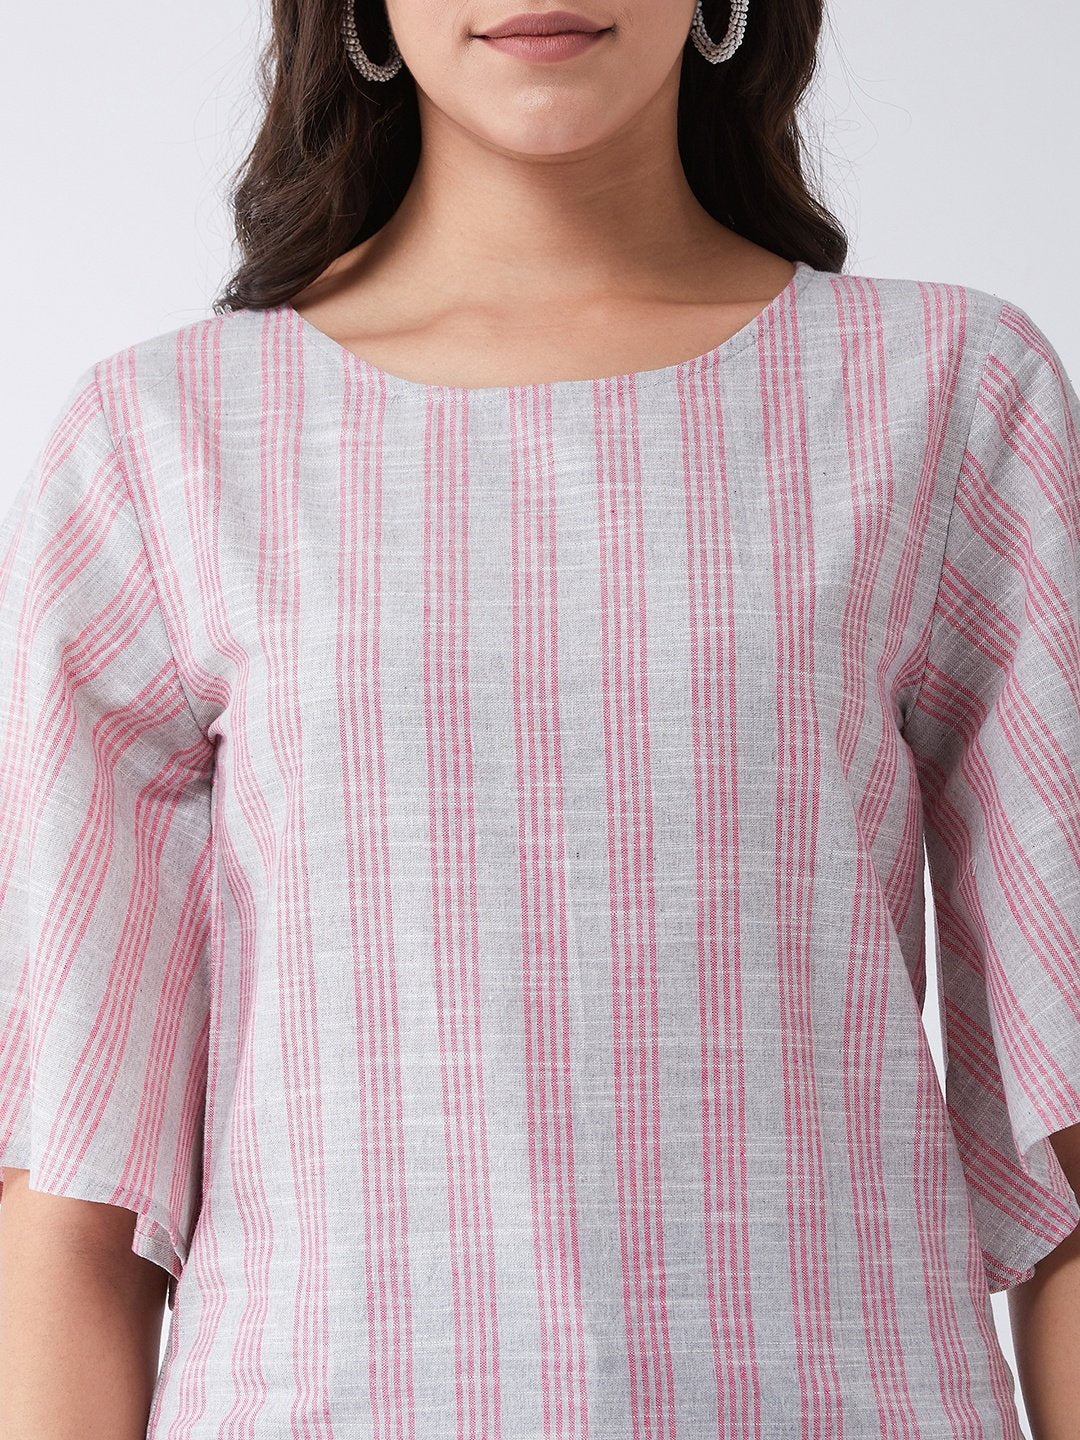 Gray And Pink Handloom Top